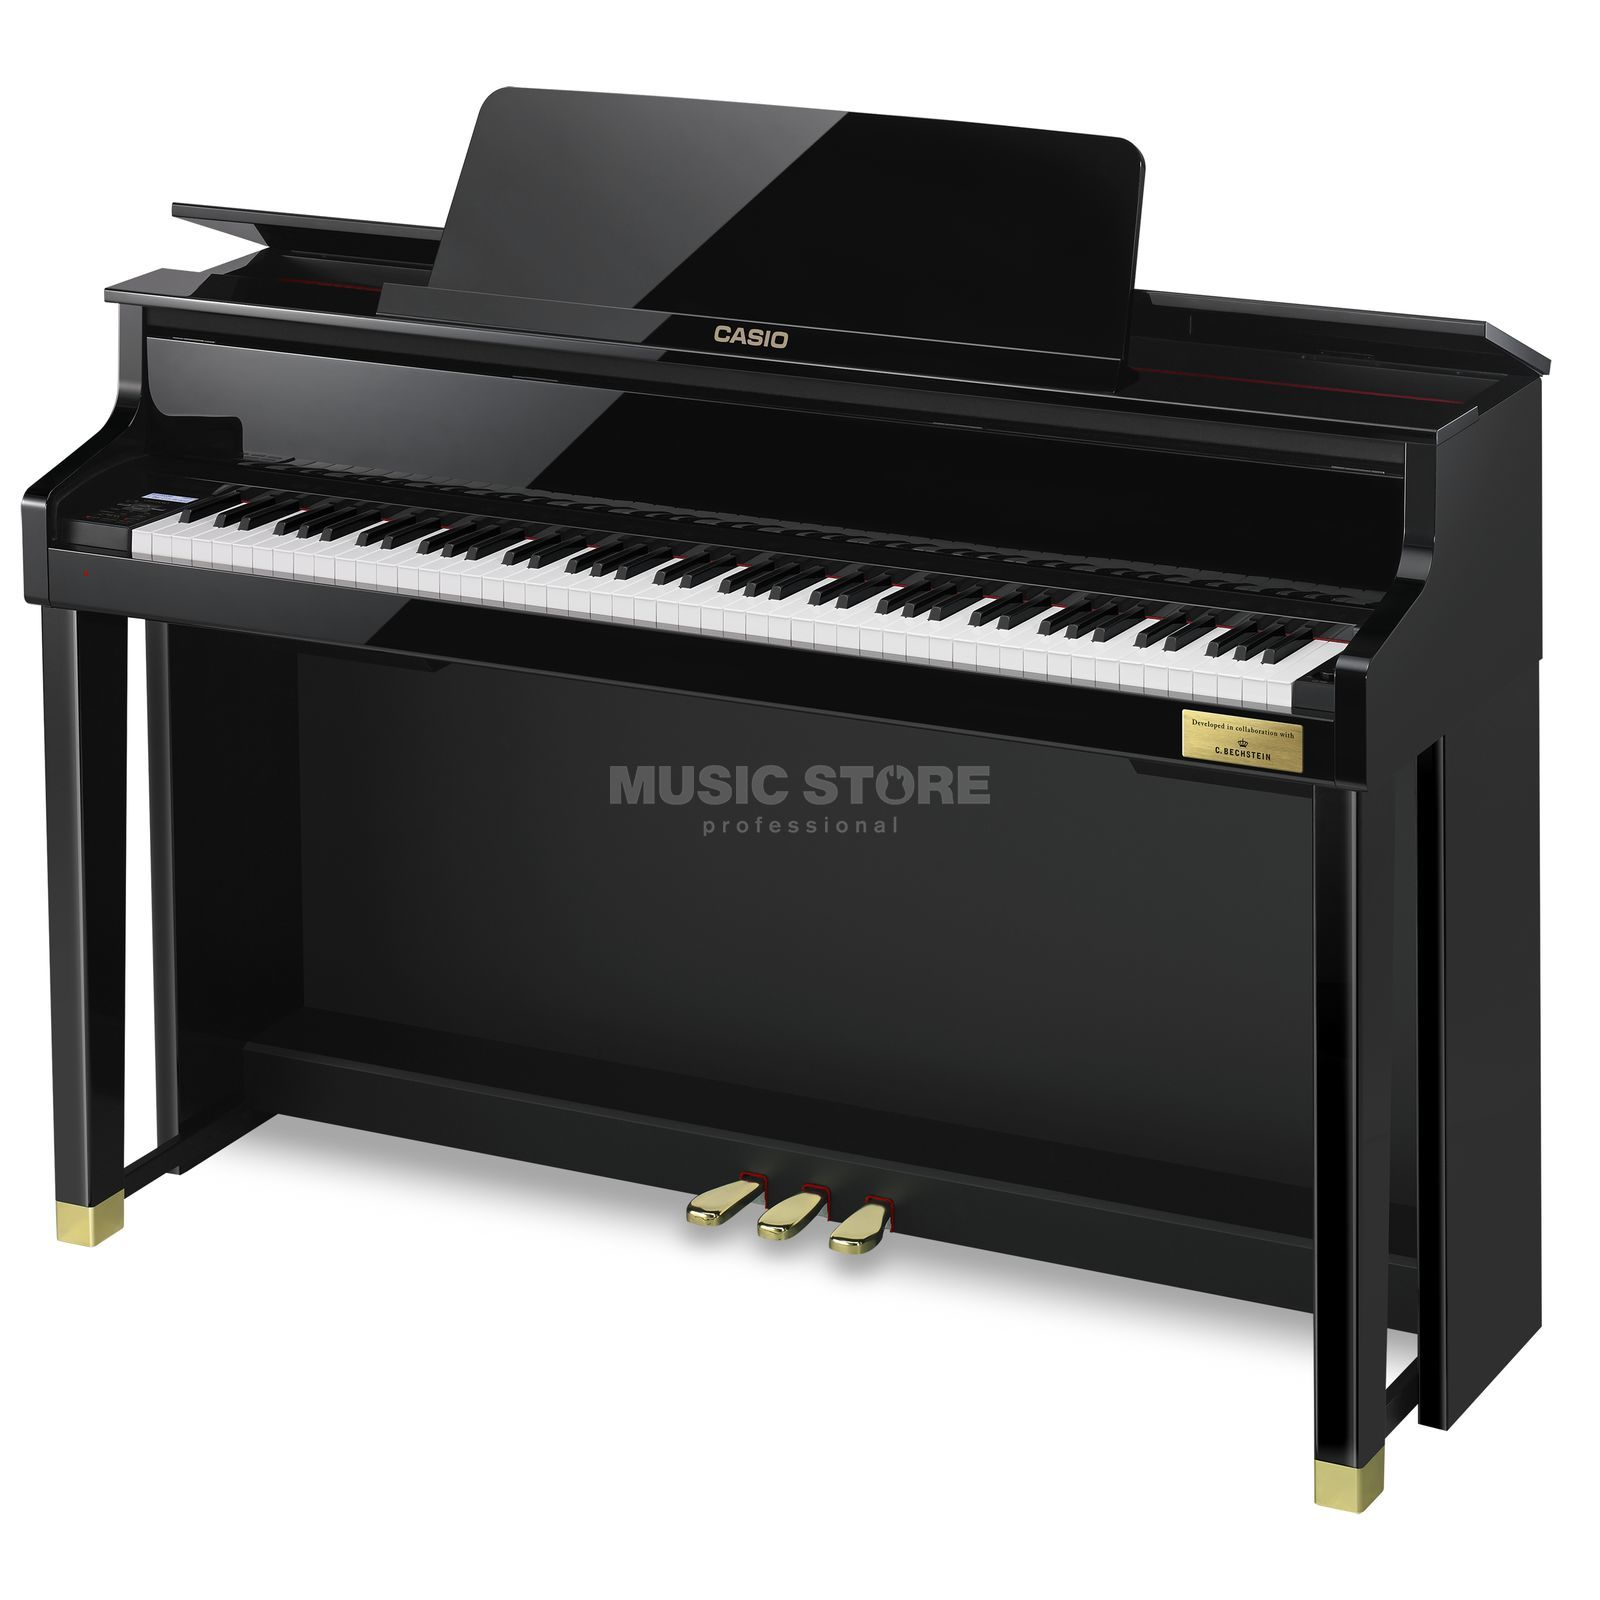 Casio GP-500 Grand Hybrid Digitalpiano Produktbild